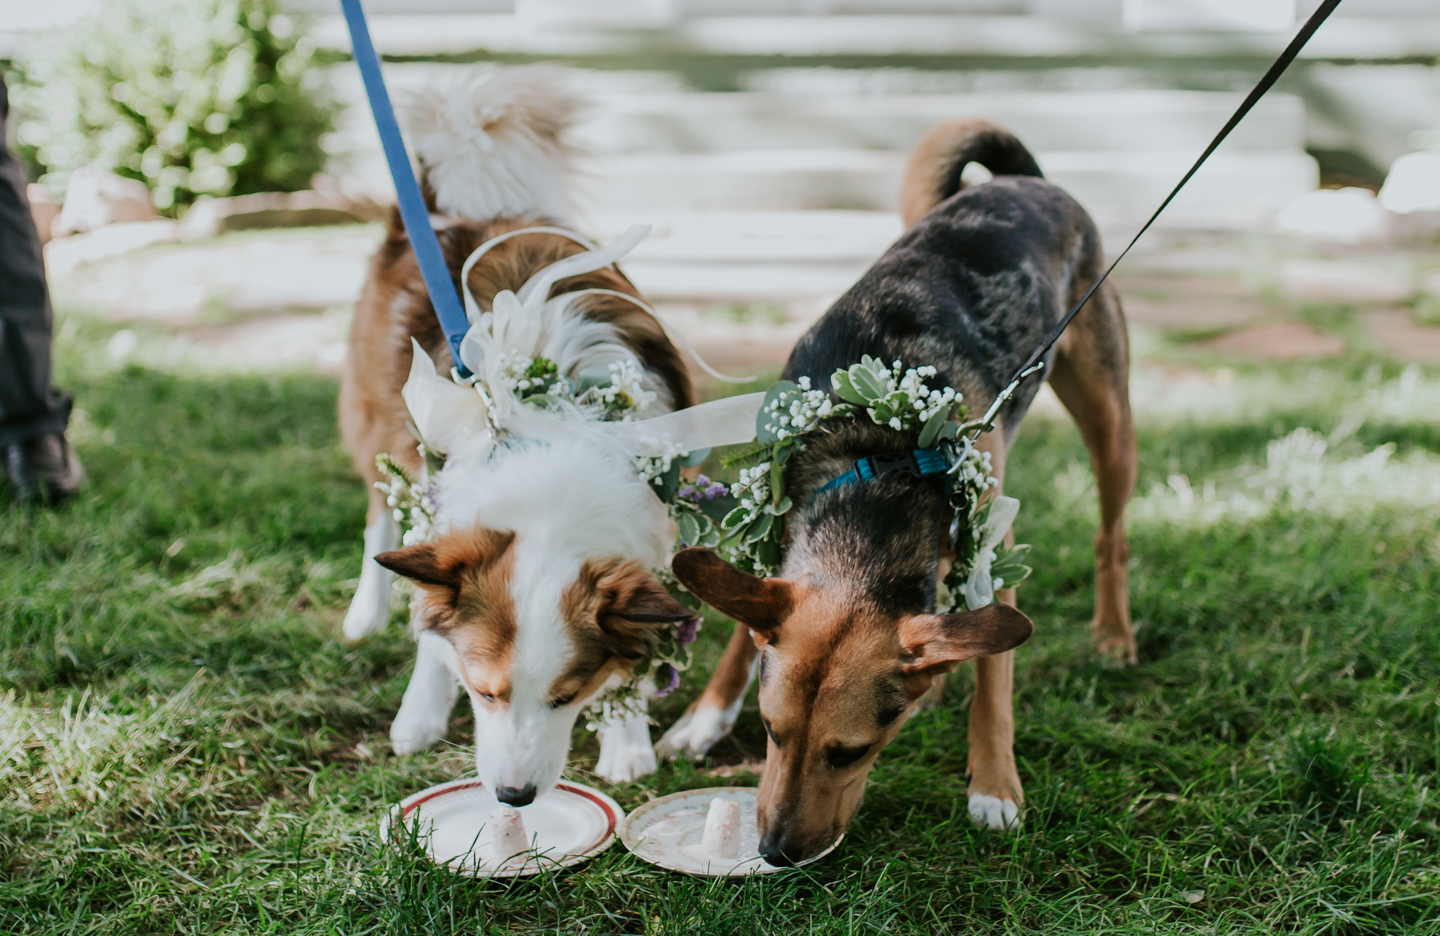 lola-grace-photography-dog-intimate-wedding-17.jpg